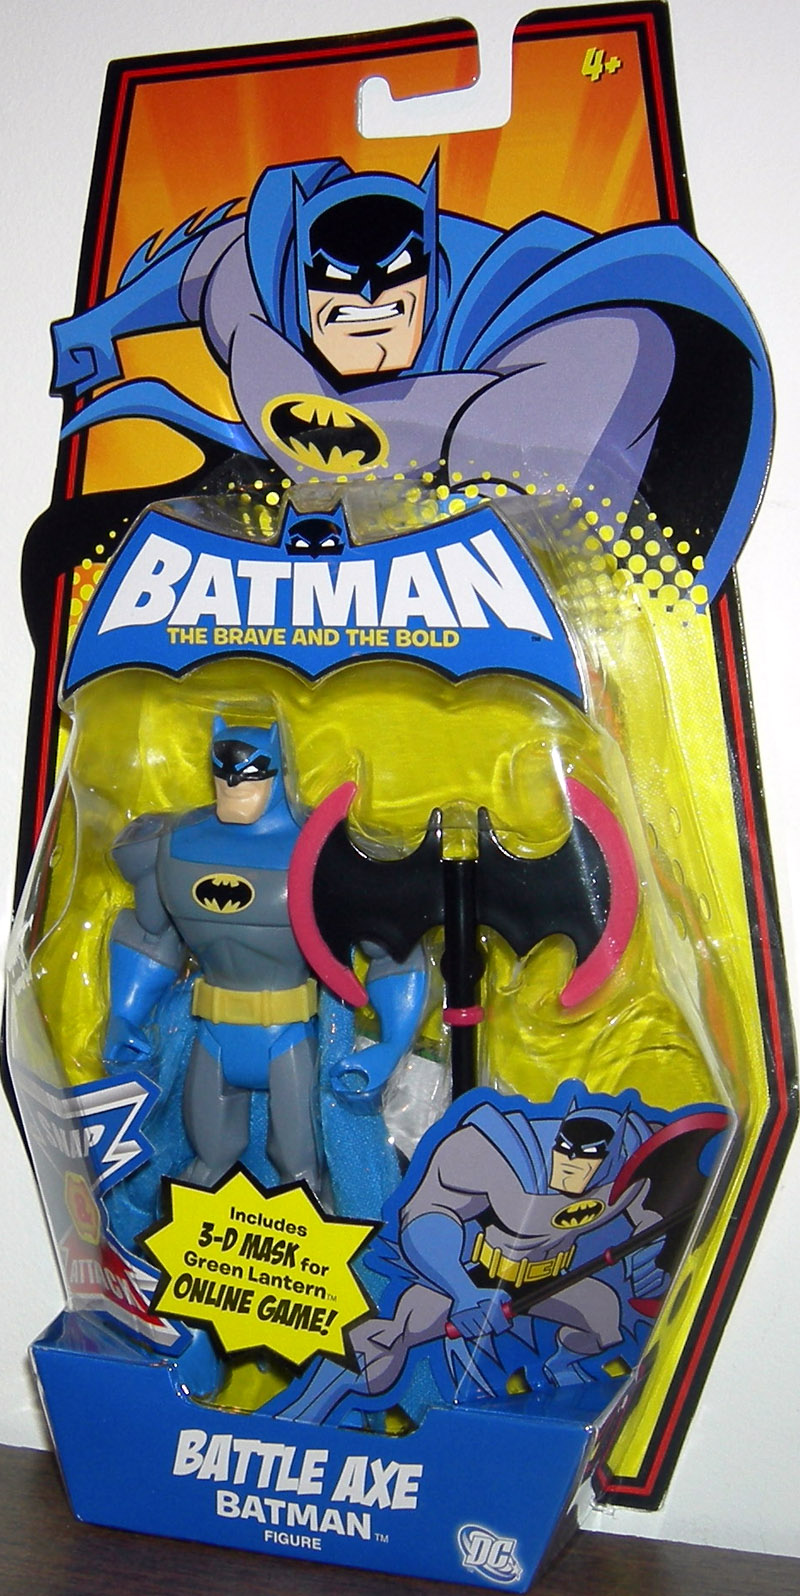 Battle Axe Batman